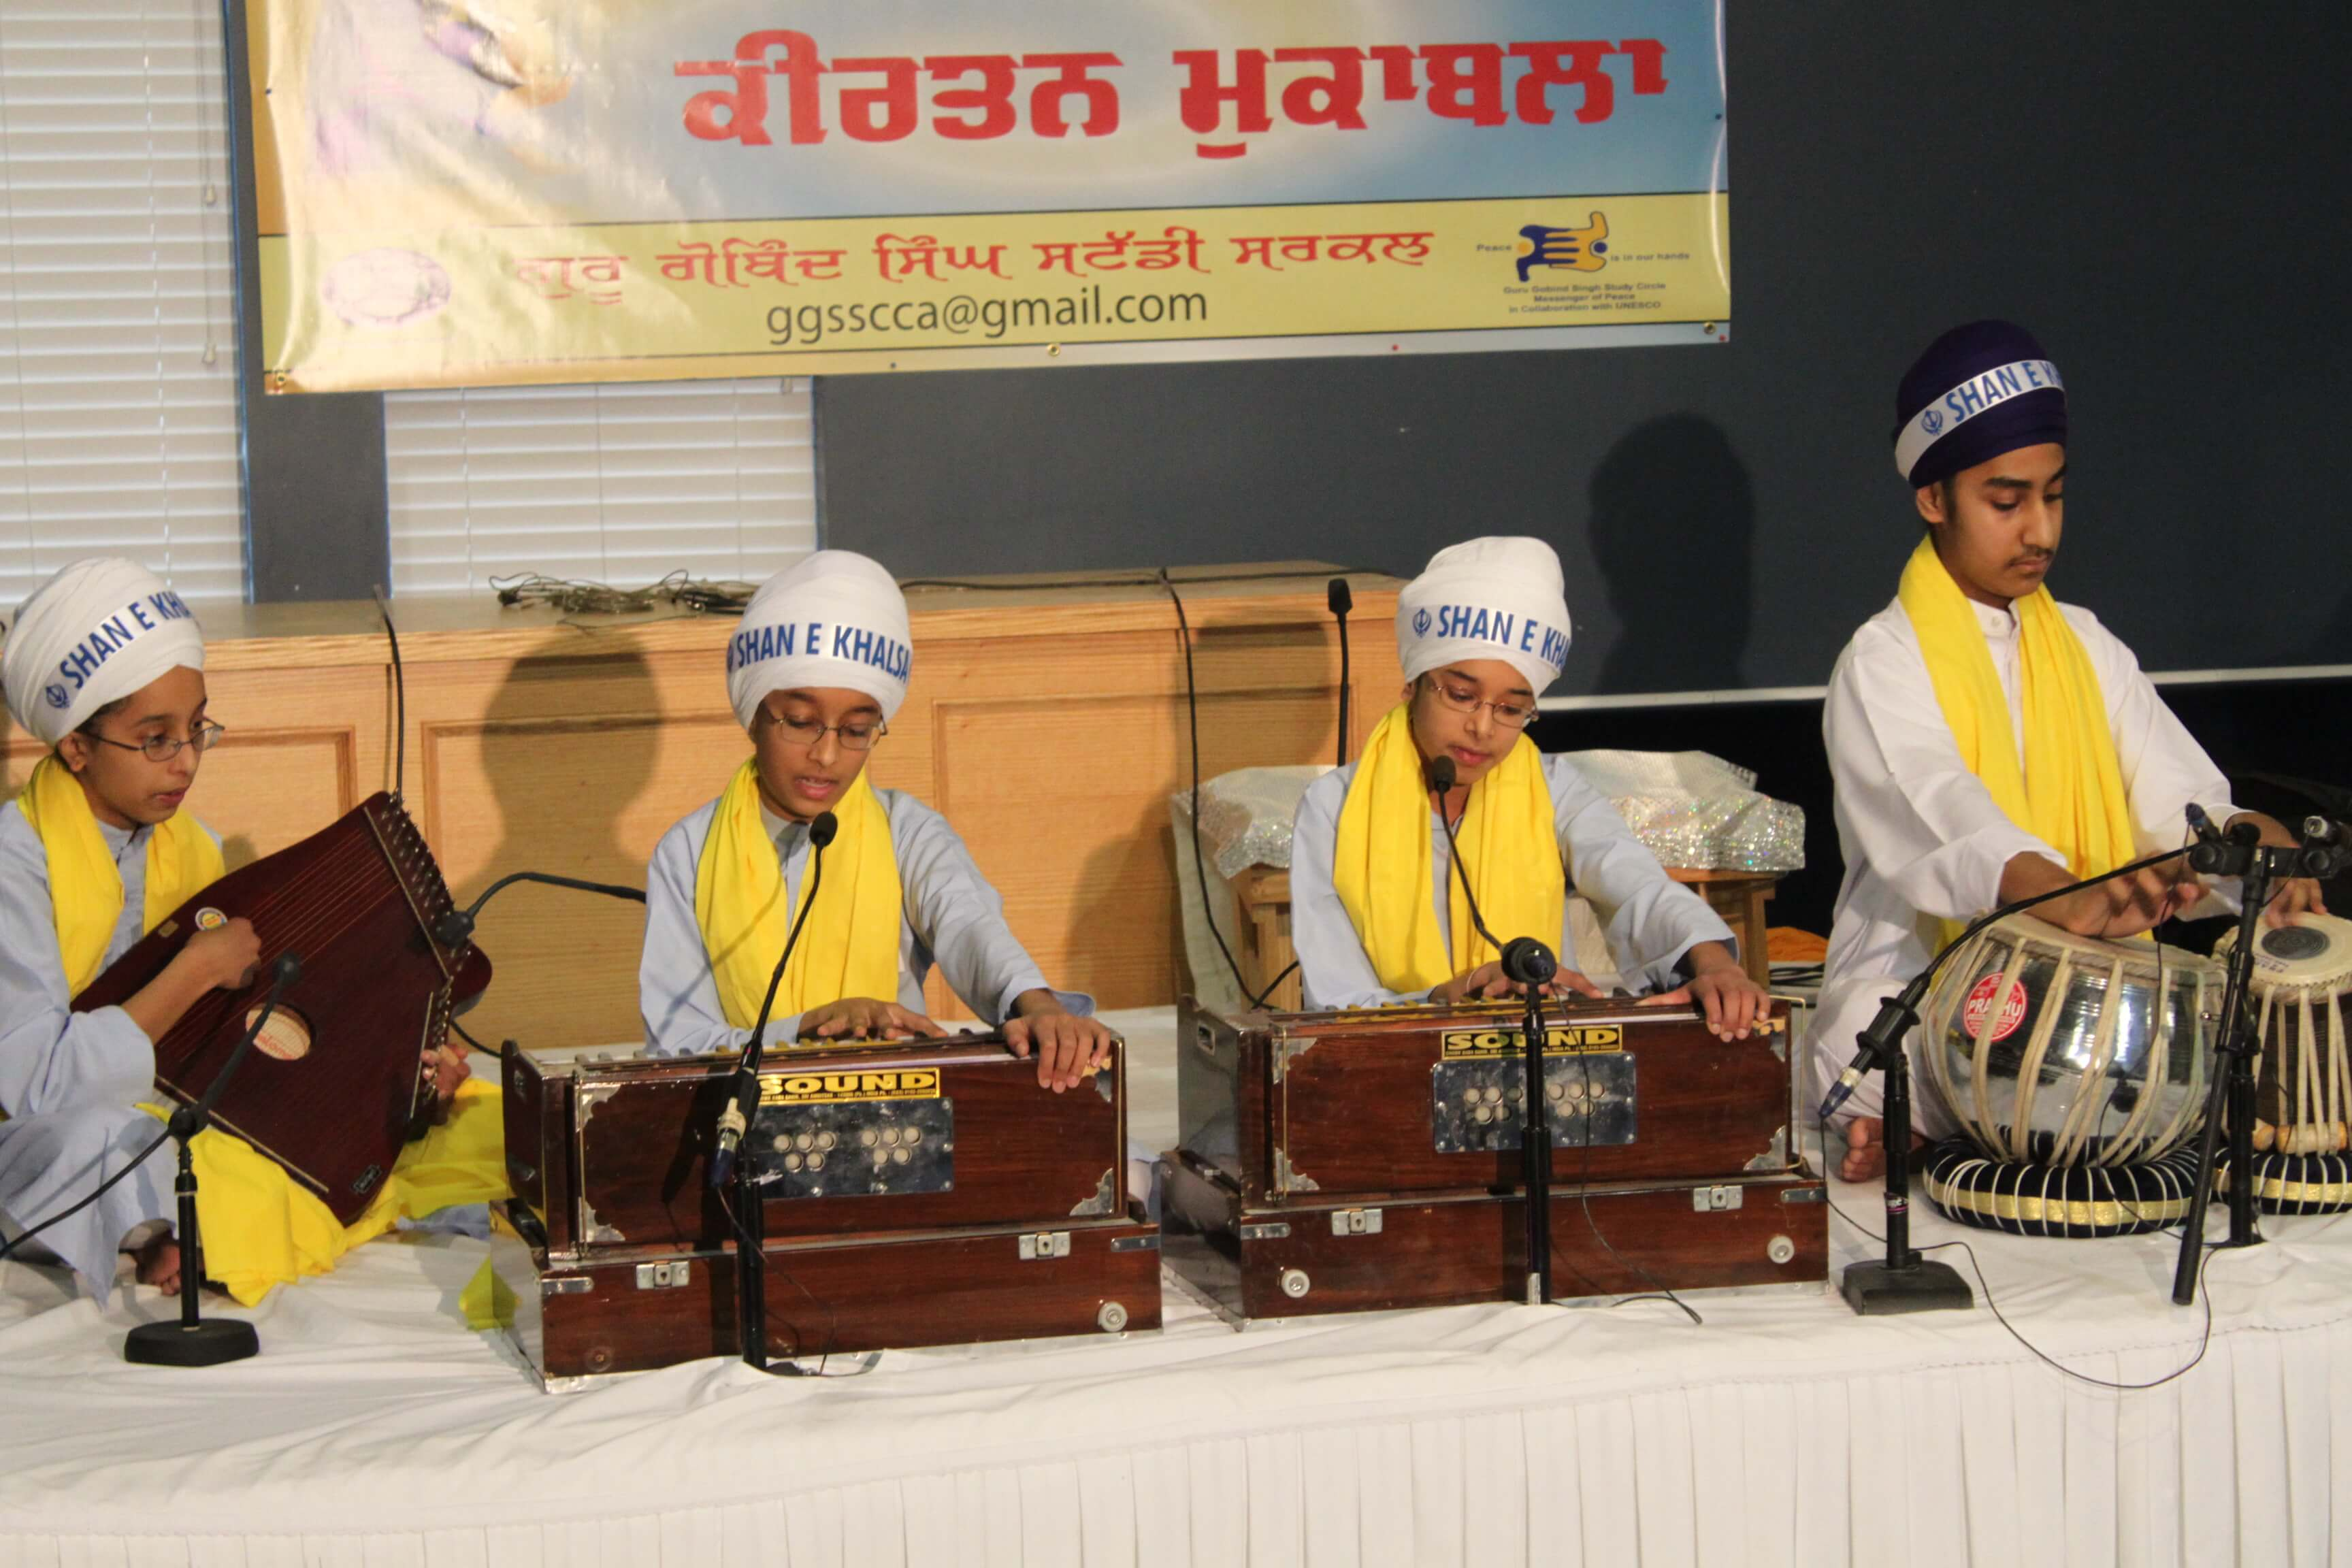 Group of students playing the harmonium and tabla (indian hand drums) on stage